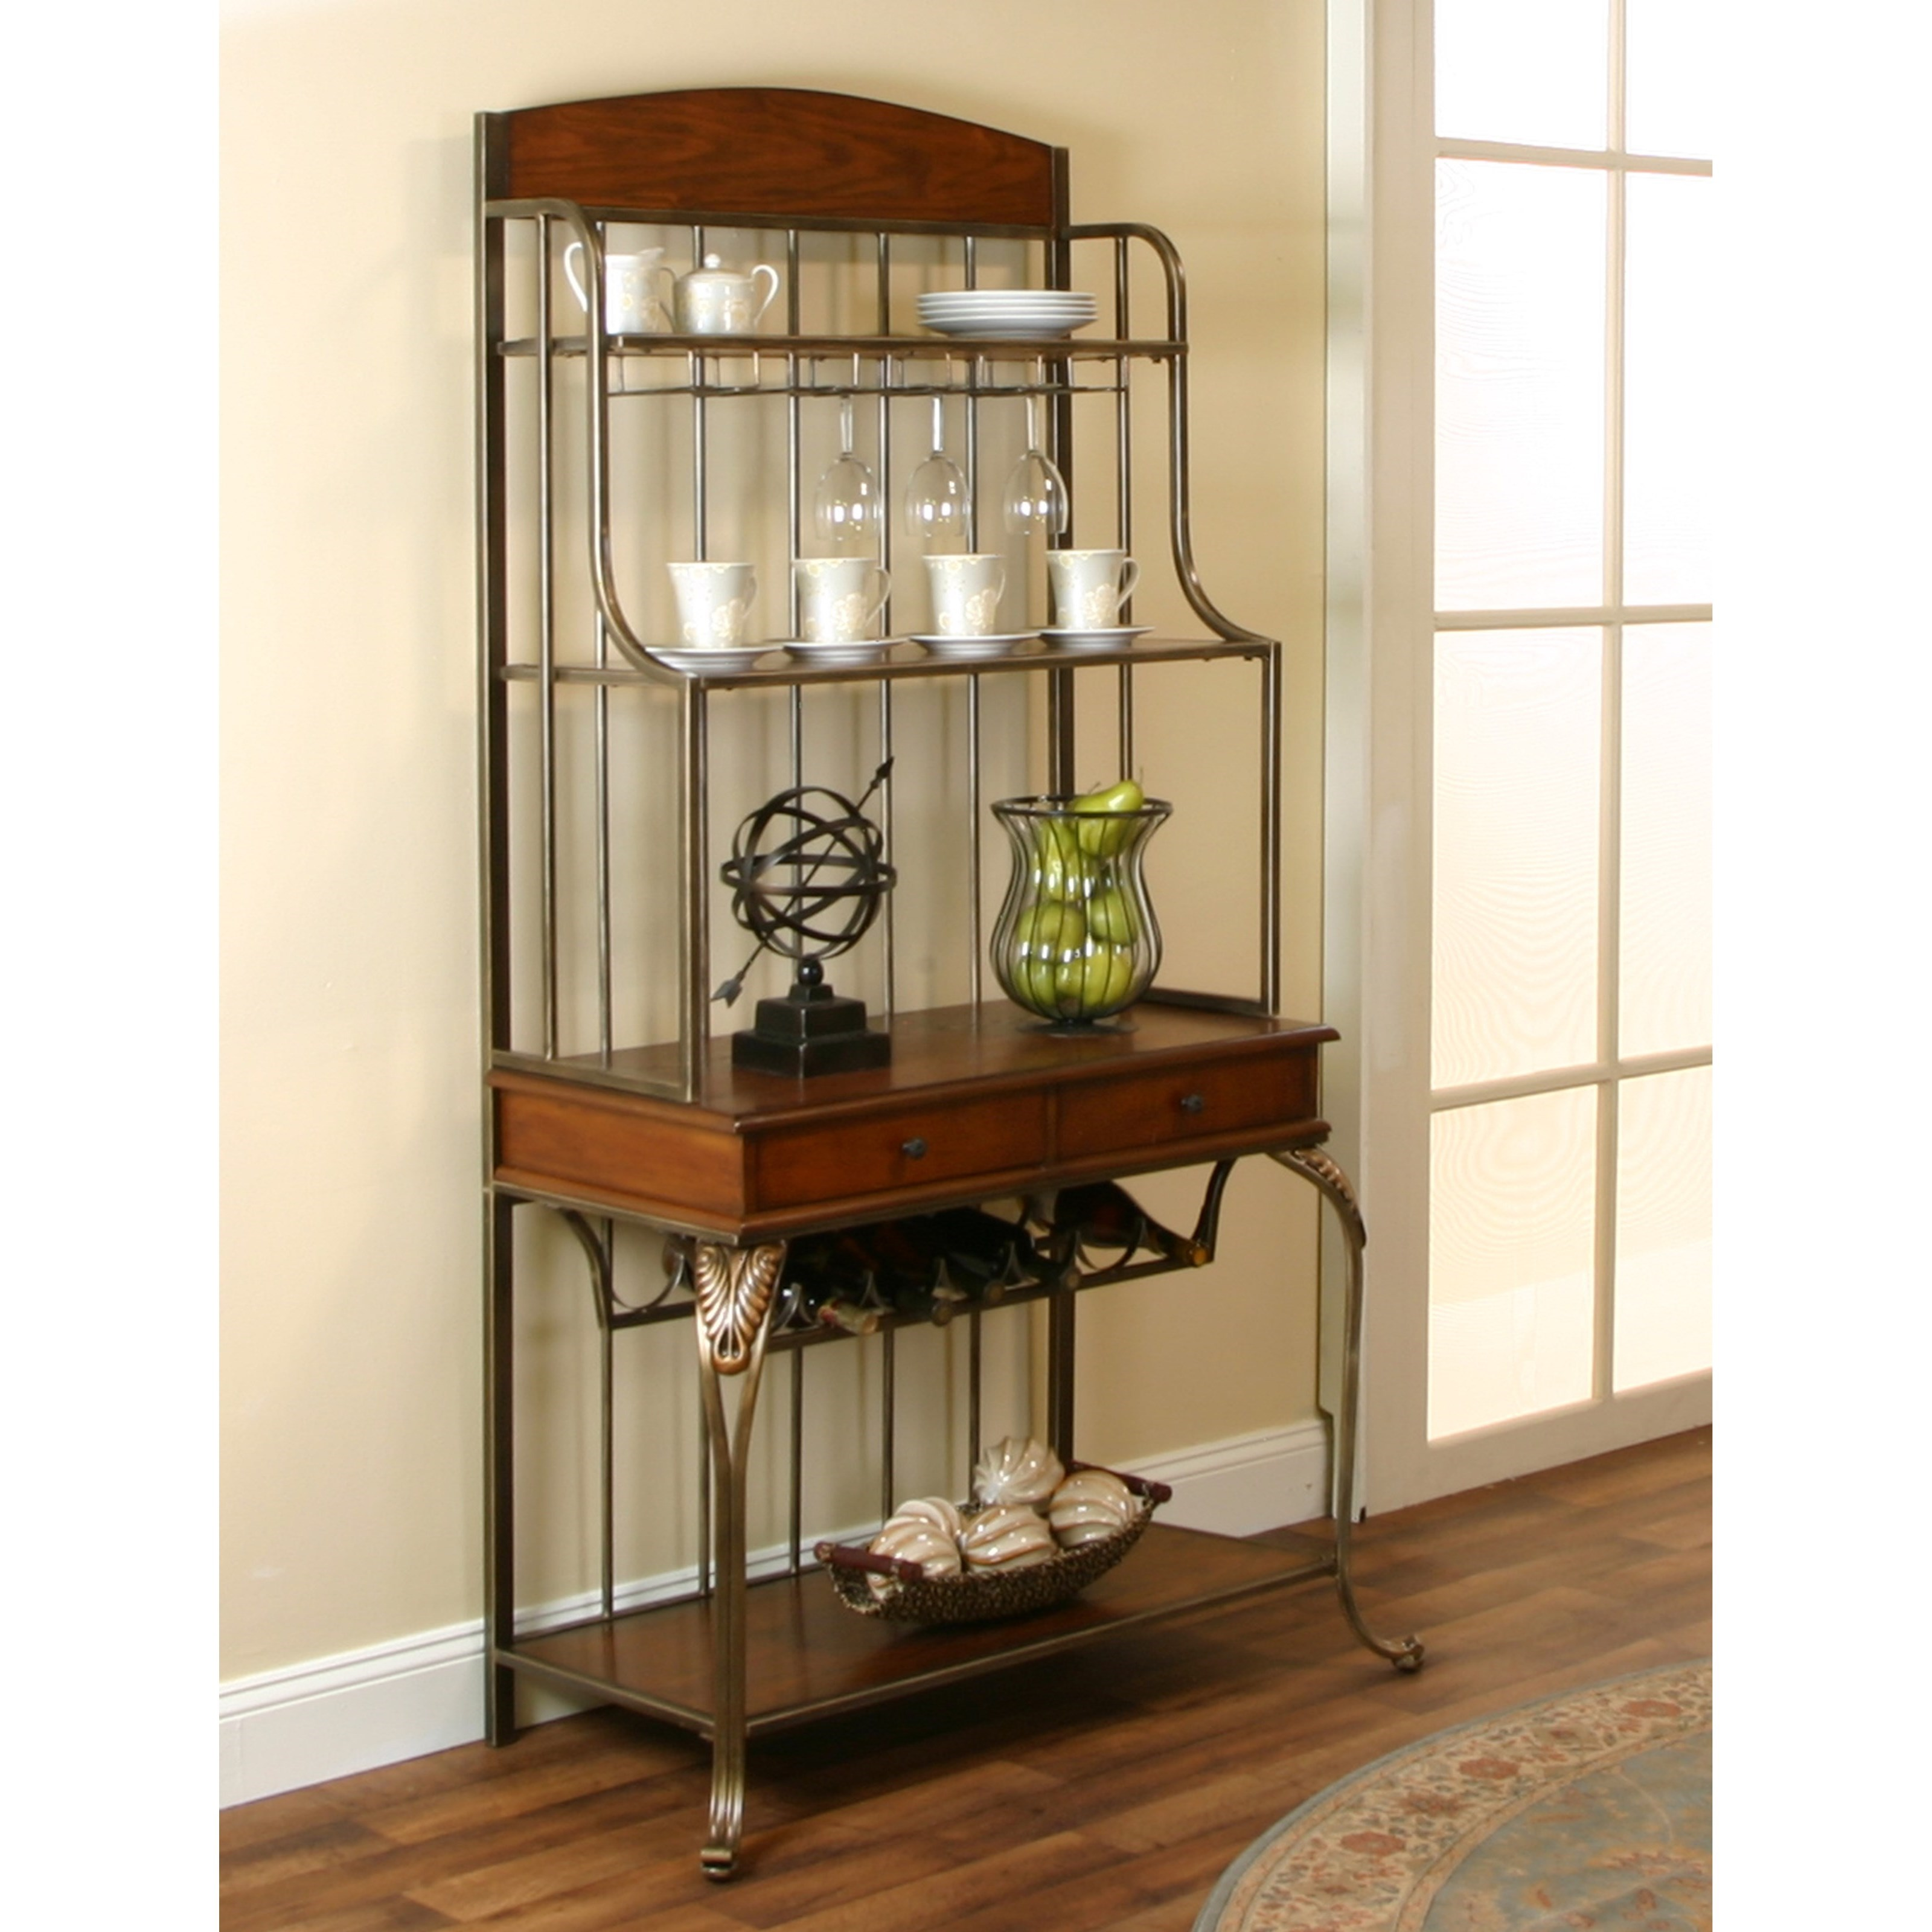 Cramco, Inc Harlow Golden Bronze/Ash Veneer Baker's Rack - Item Number: J9186-85